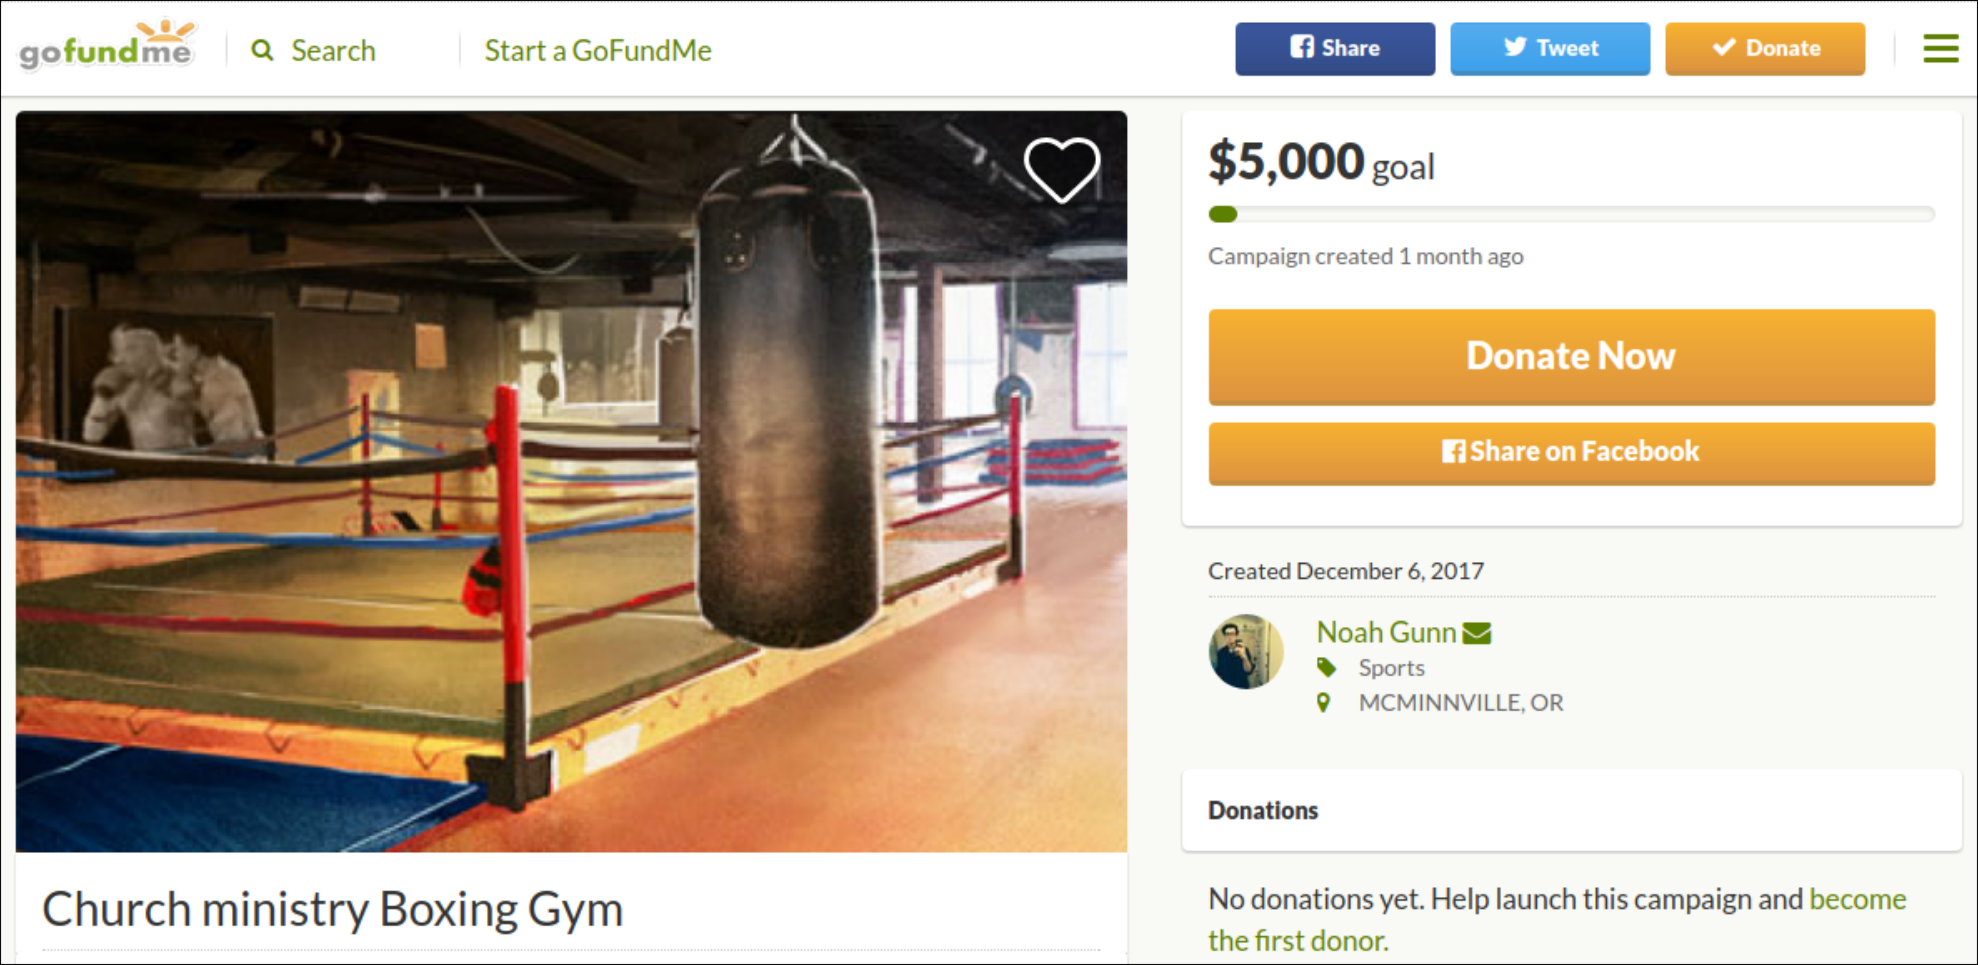 Noah Gunn attempts to raise money for a boxing gym